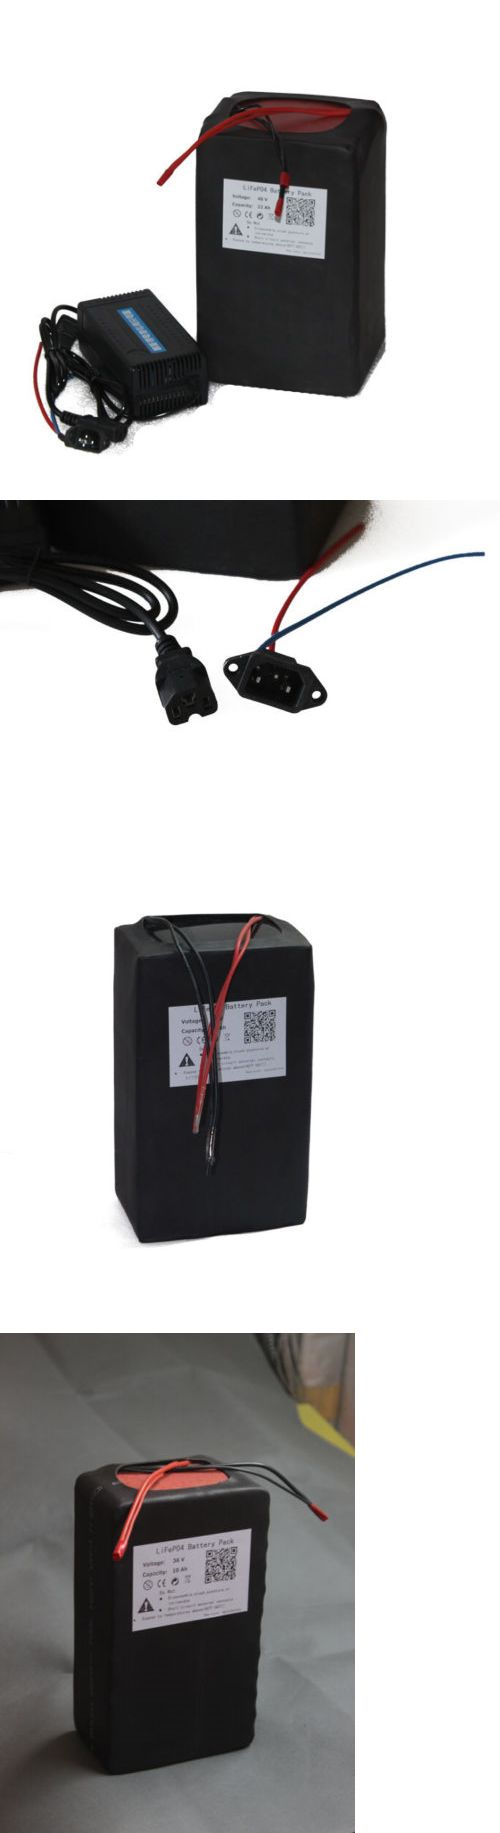 Electric Bicycle Components 177814: 48V 20Ah Lifepo4 Battery Pack Power For Ebike Free Charger New Cell BUY IT NOW ONLY: $490.0